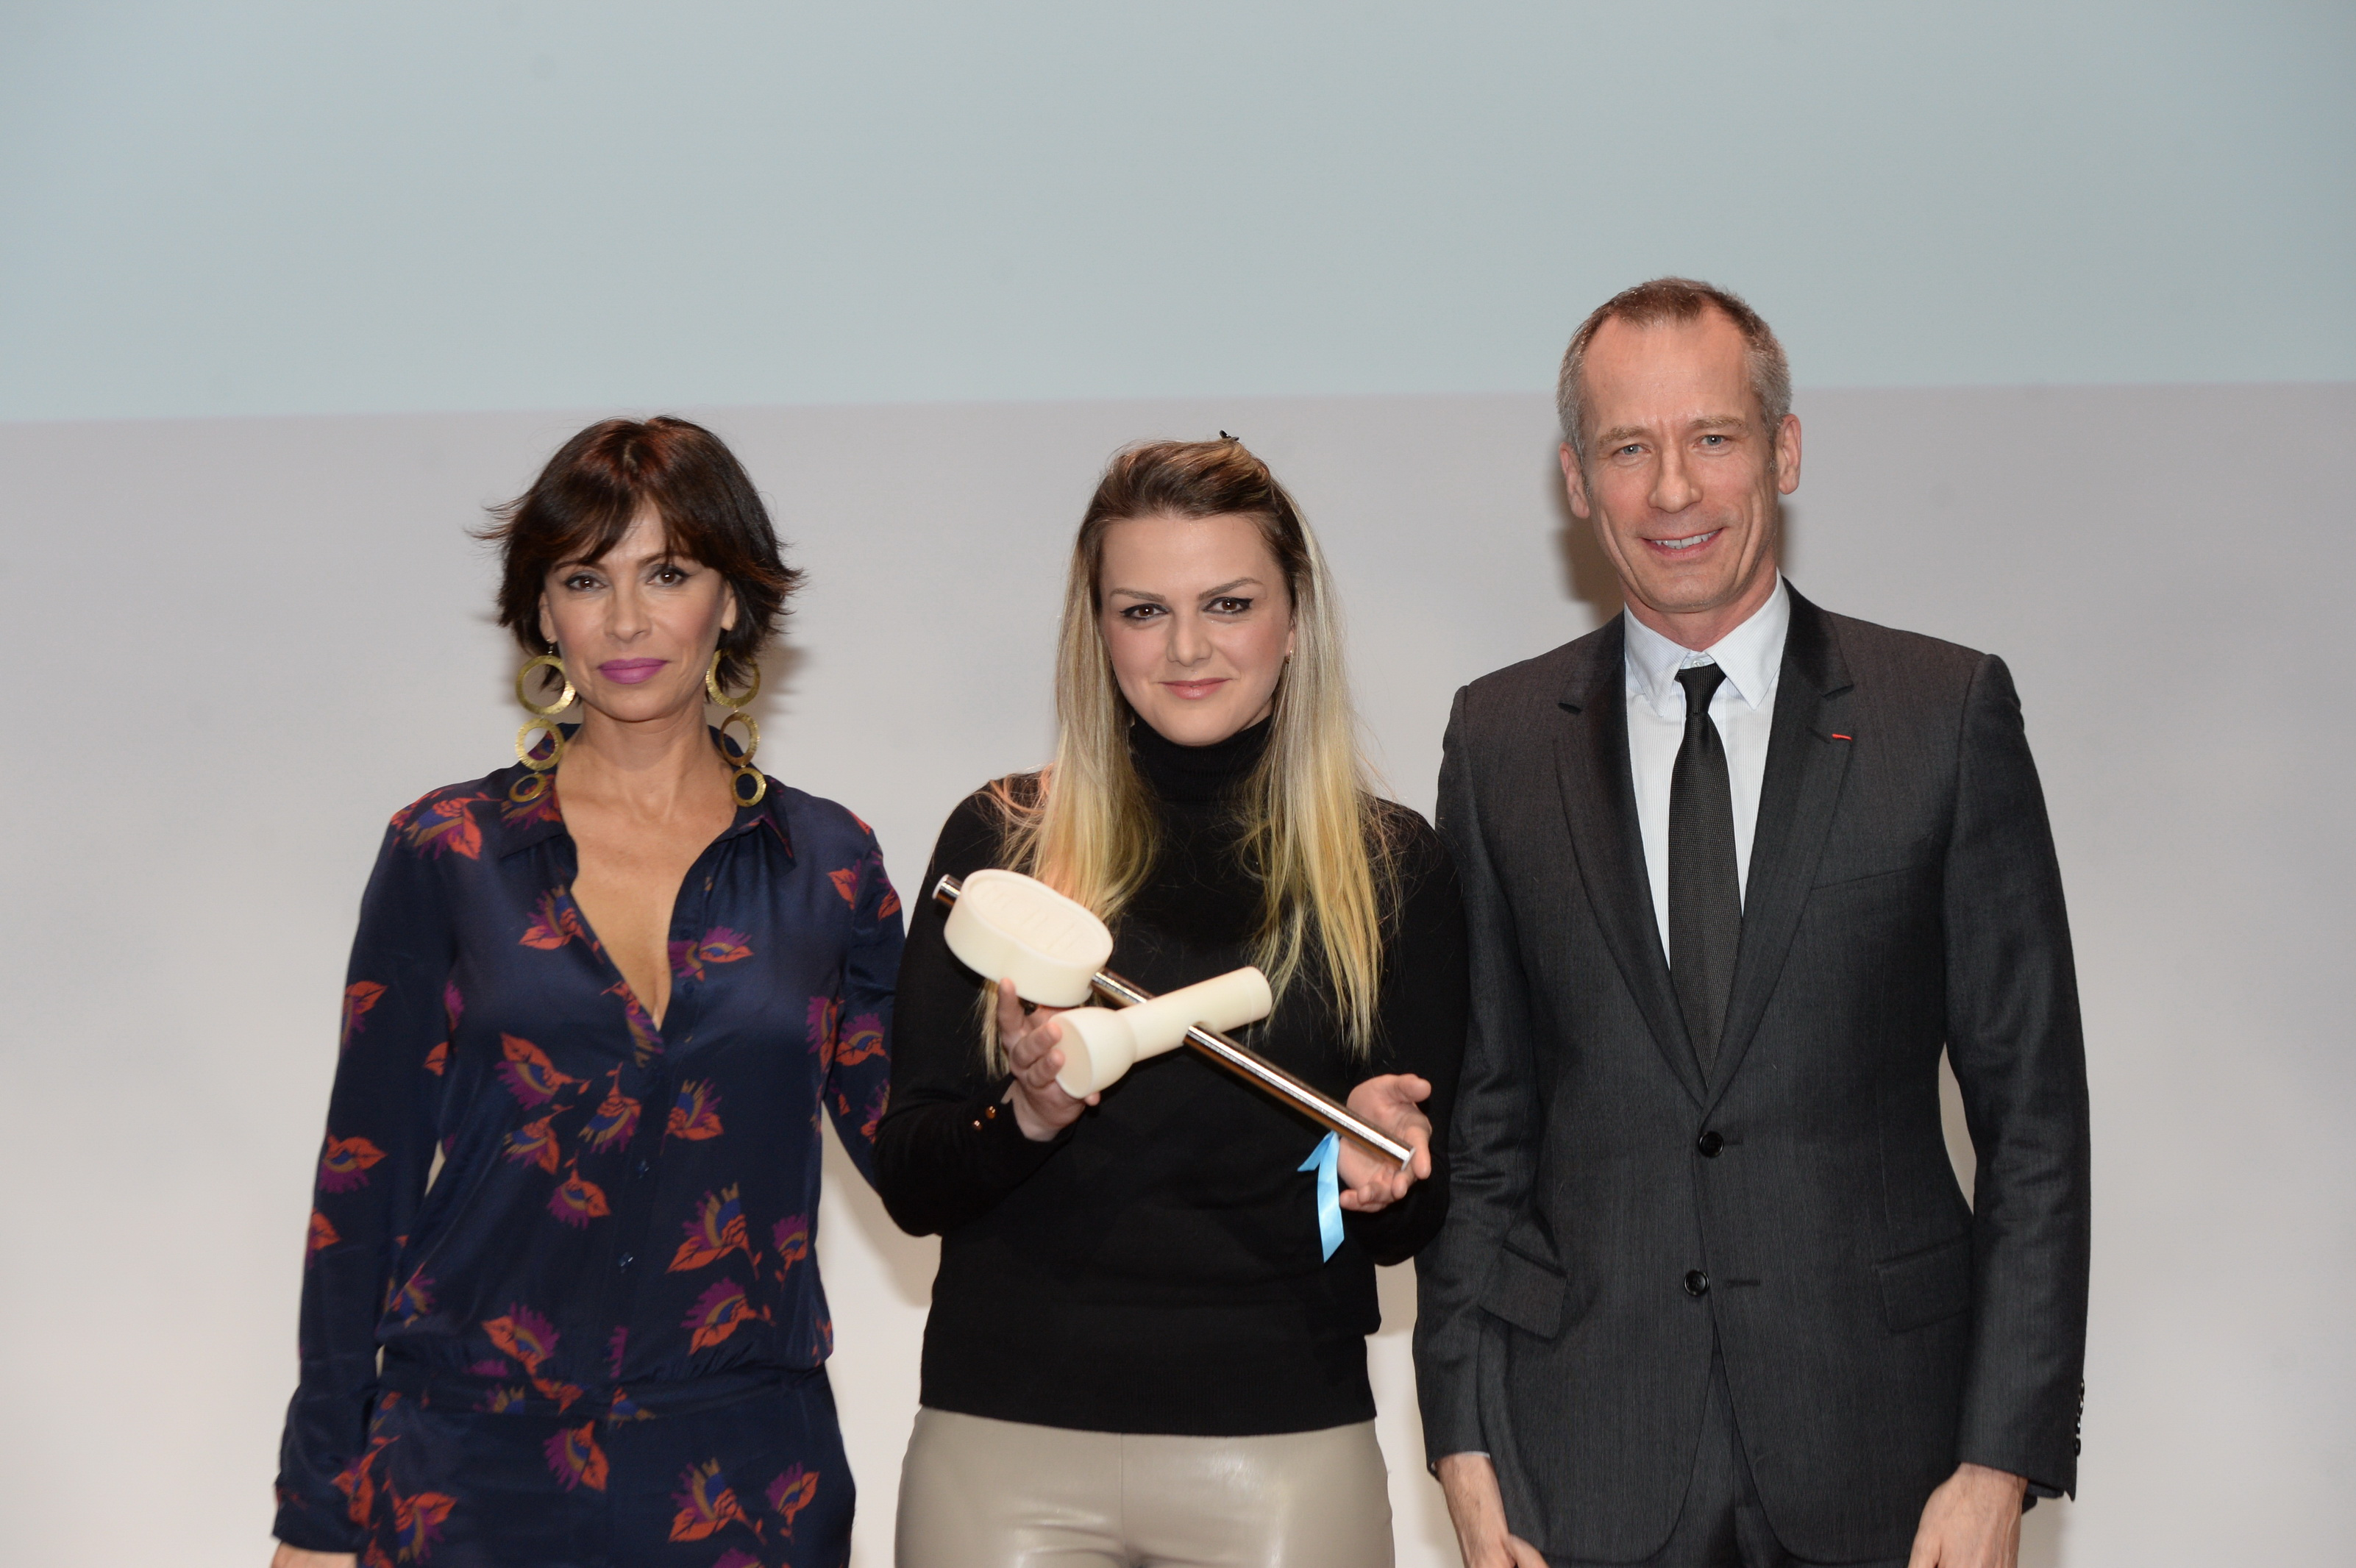 mathilda-may-thierry-jadot-pdt-dentsu-aegis-network-parrain-et-marraine-de-lola